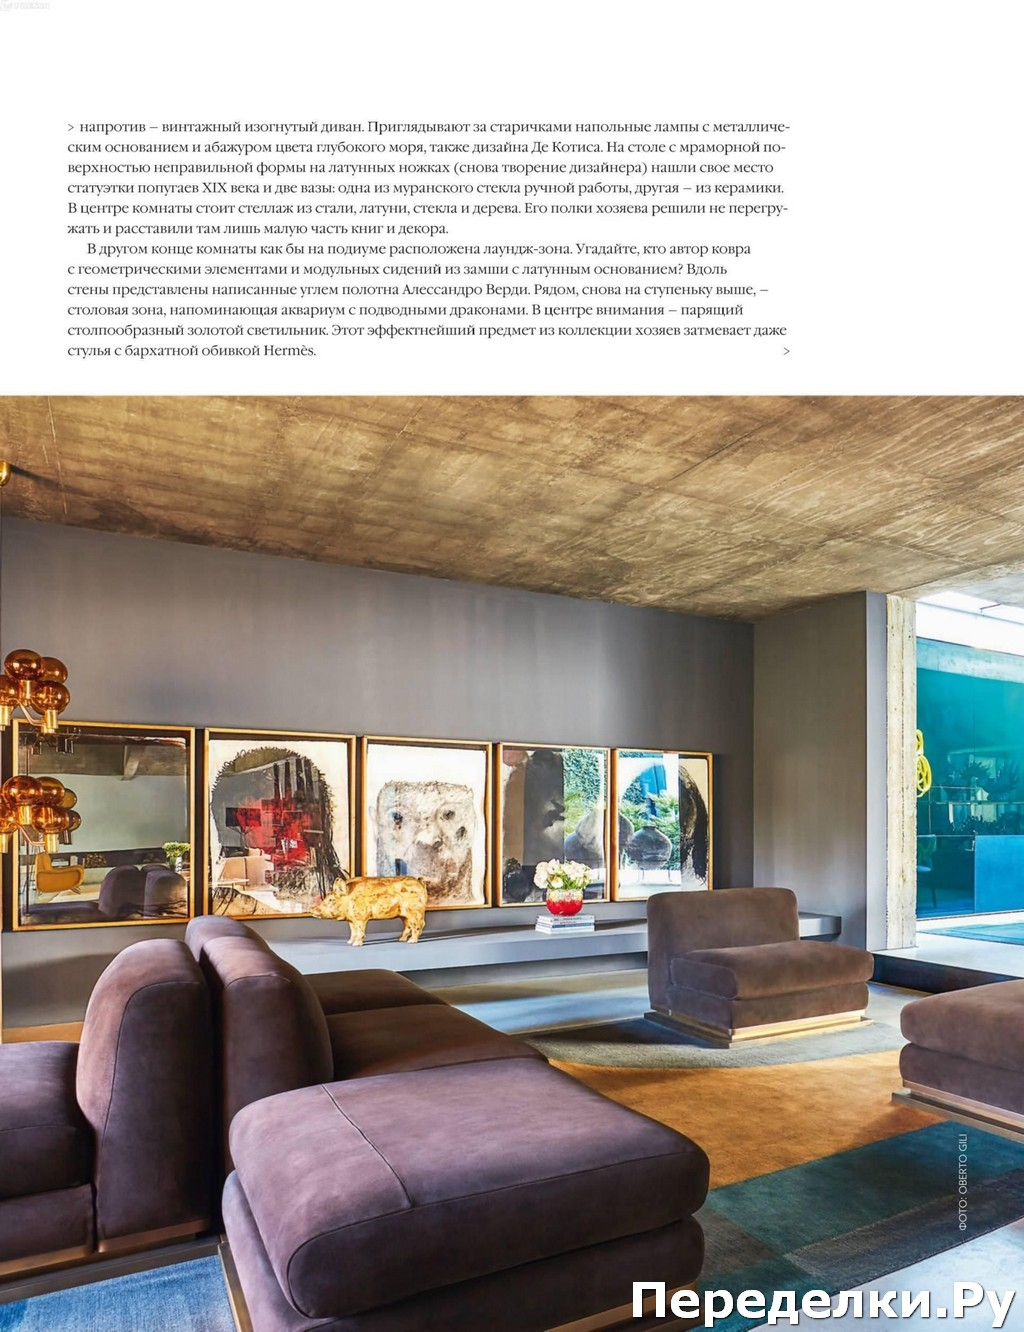 AD Architectural Digest 4 aprel 2020 181